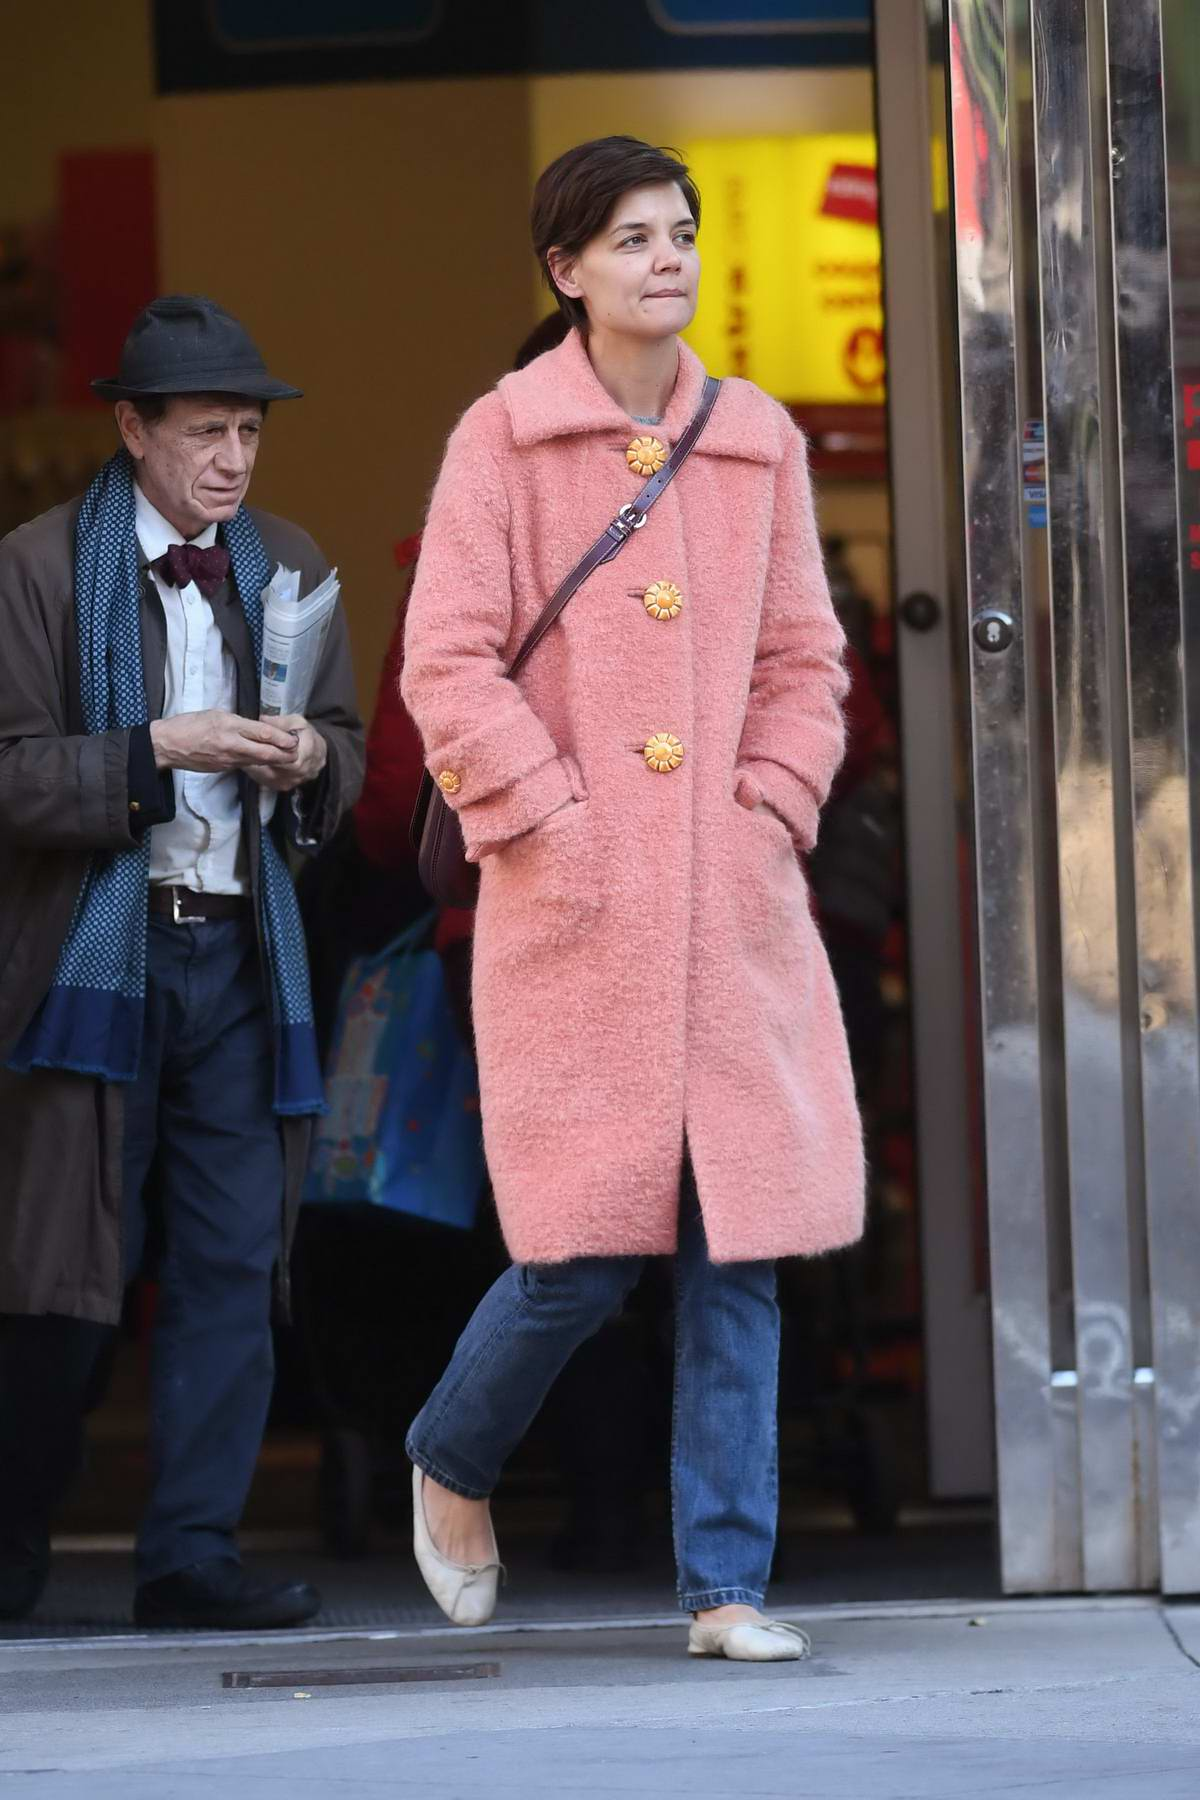 Katie Holmes spotted in a peach coat while out on shopping in New York City